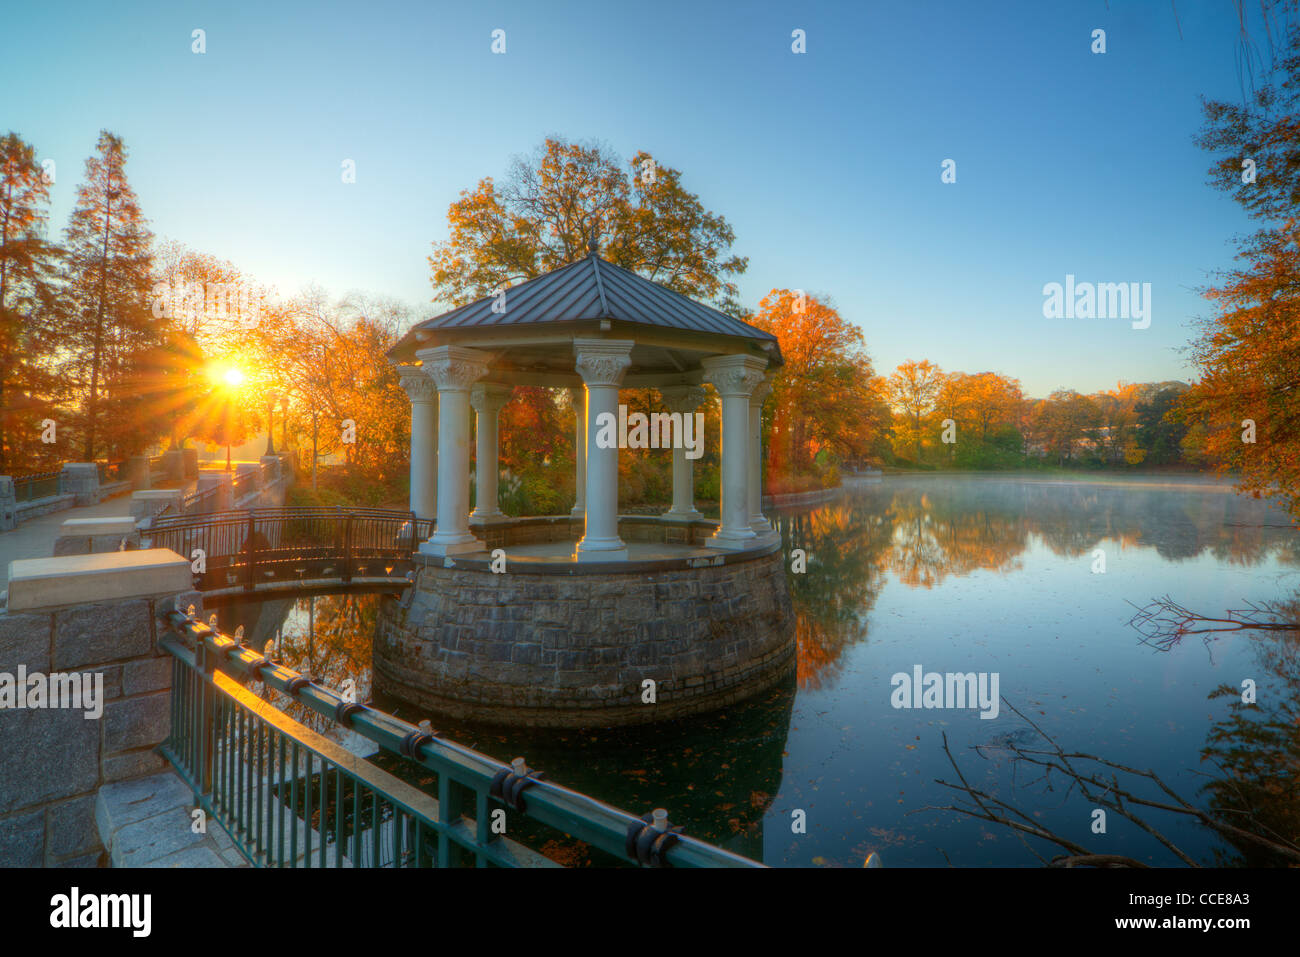 Pavillon am See Meer in Piedmont Park in Atlanta, Georgia. Stockbild